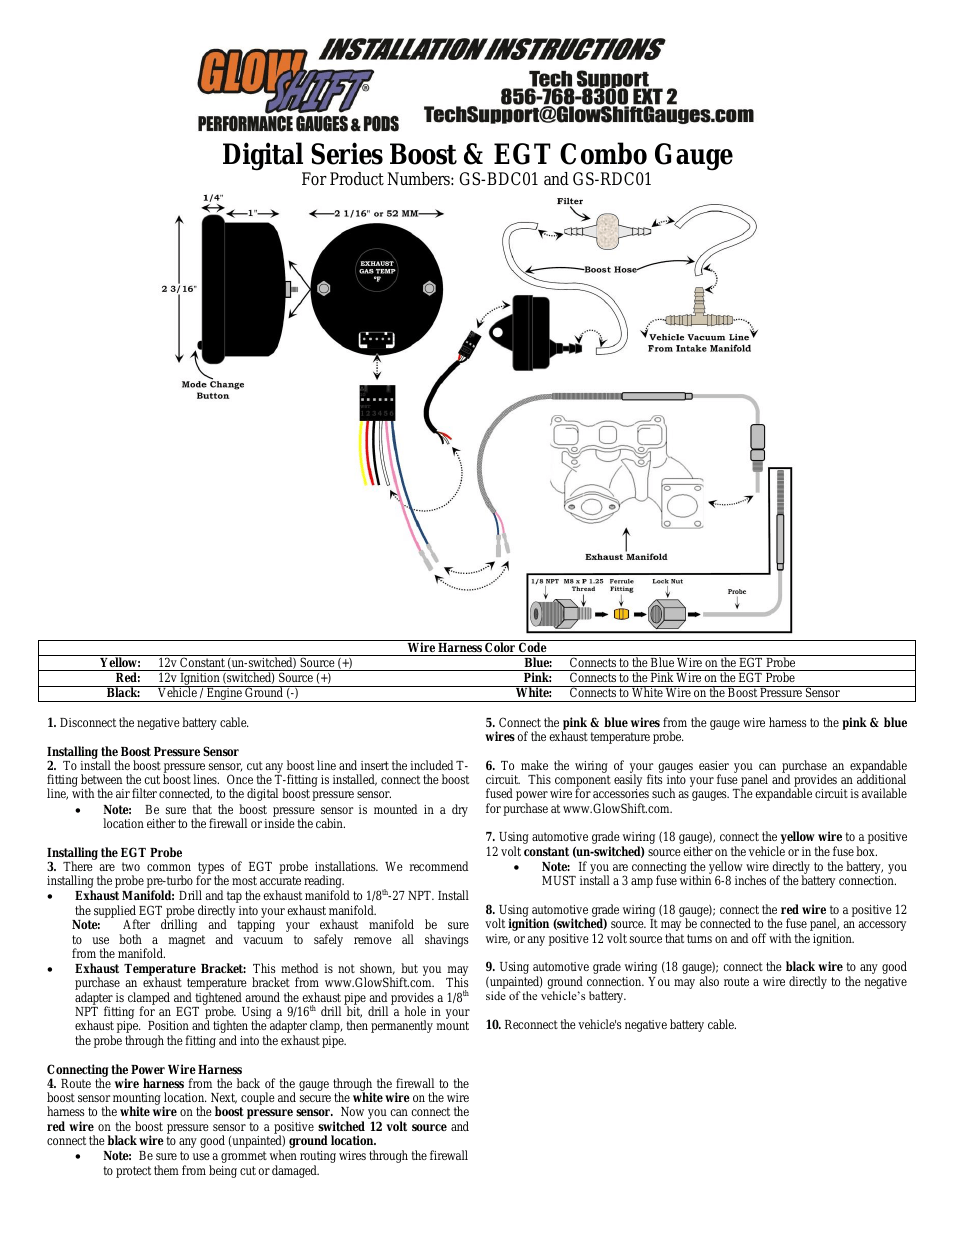 Glowshift 3 Gauge Wiring Diagram